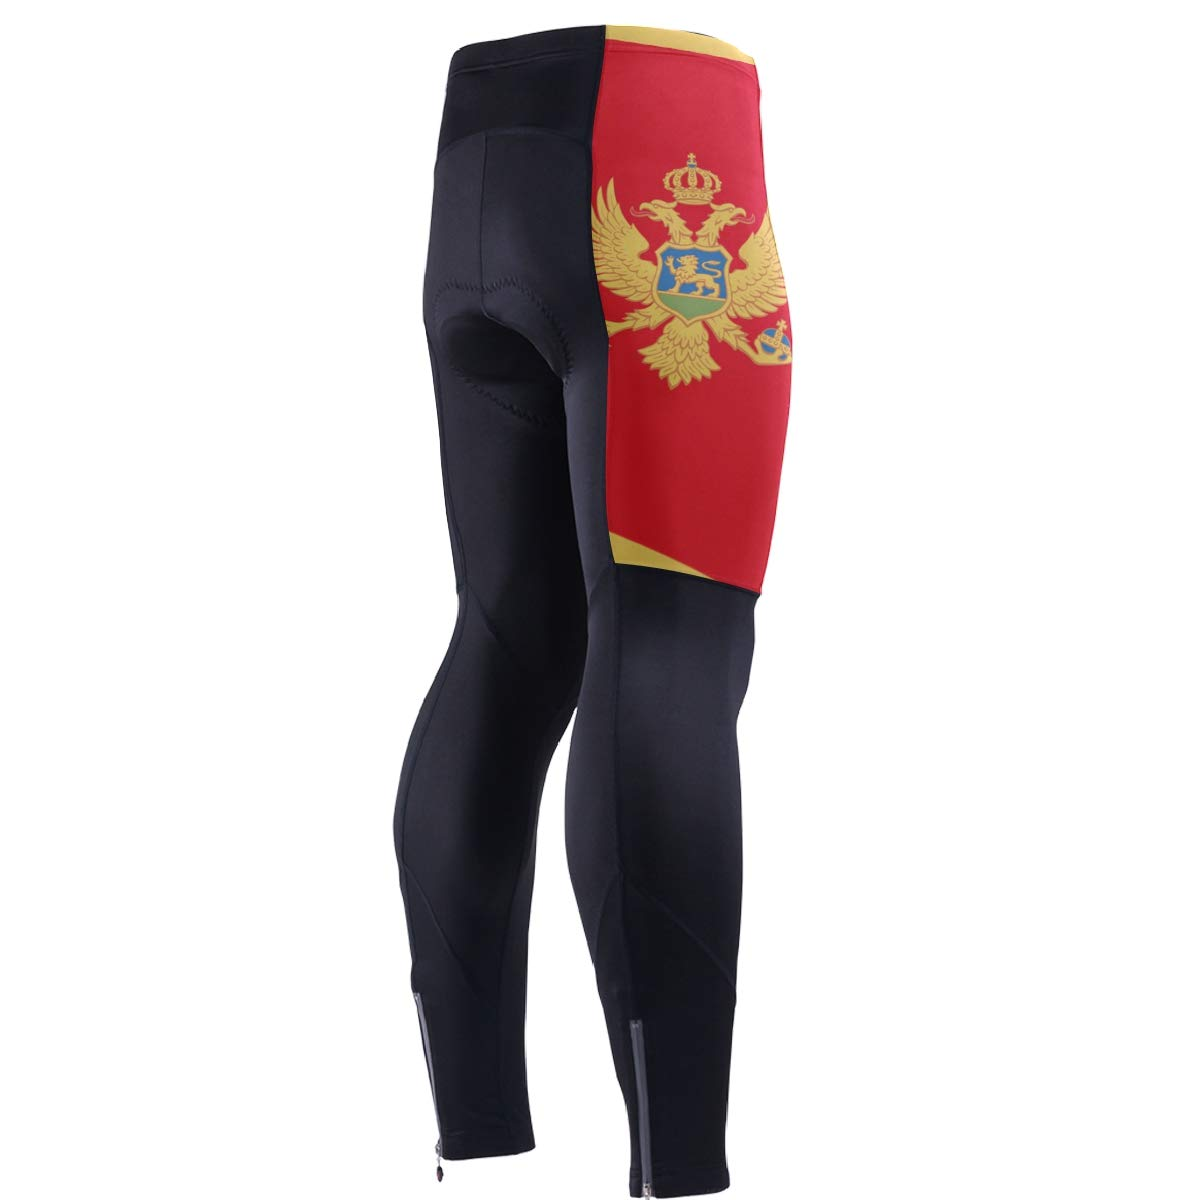 CHINEIN Men's Cycling Jersey Long Sleeve with 3 Rear Pockets Pants Montenegro Flag by CHINEIN